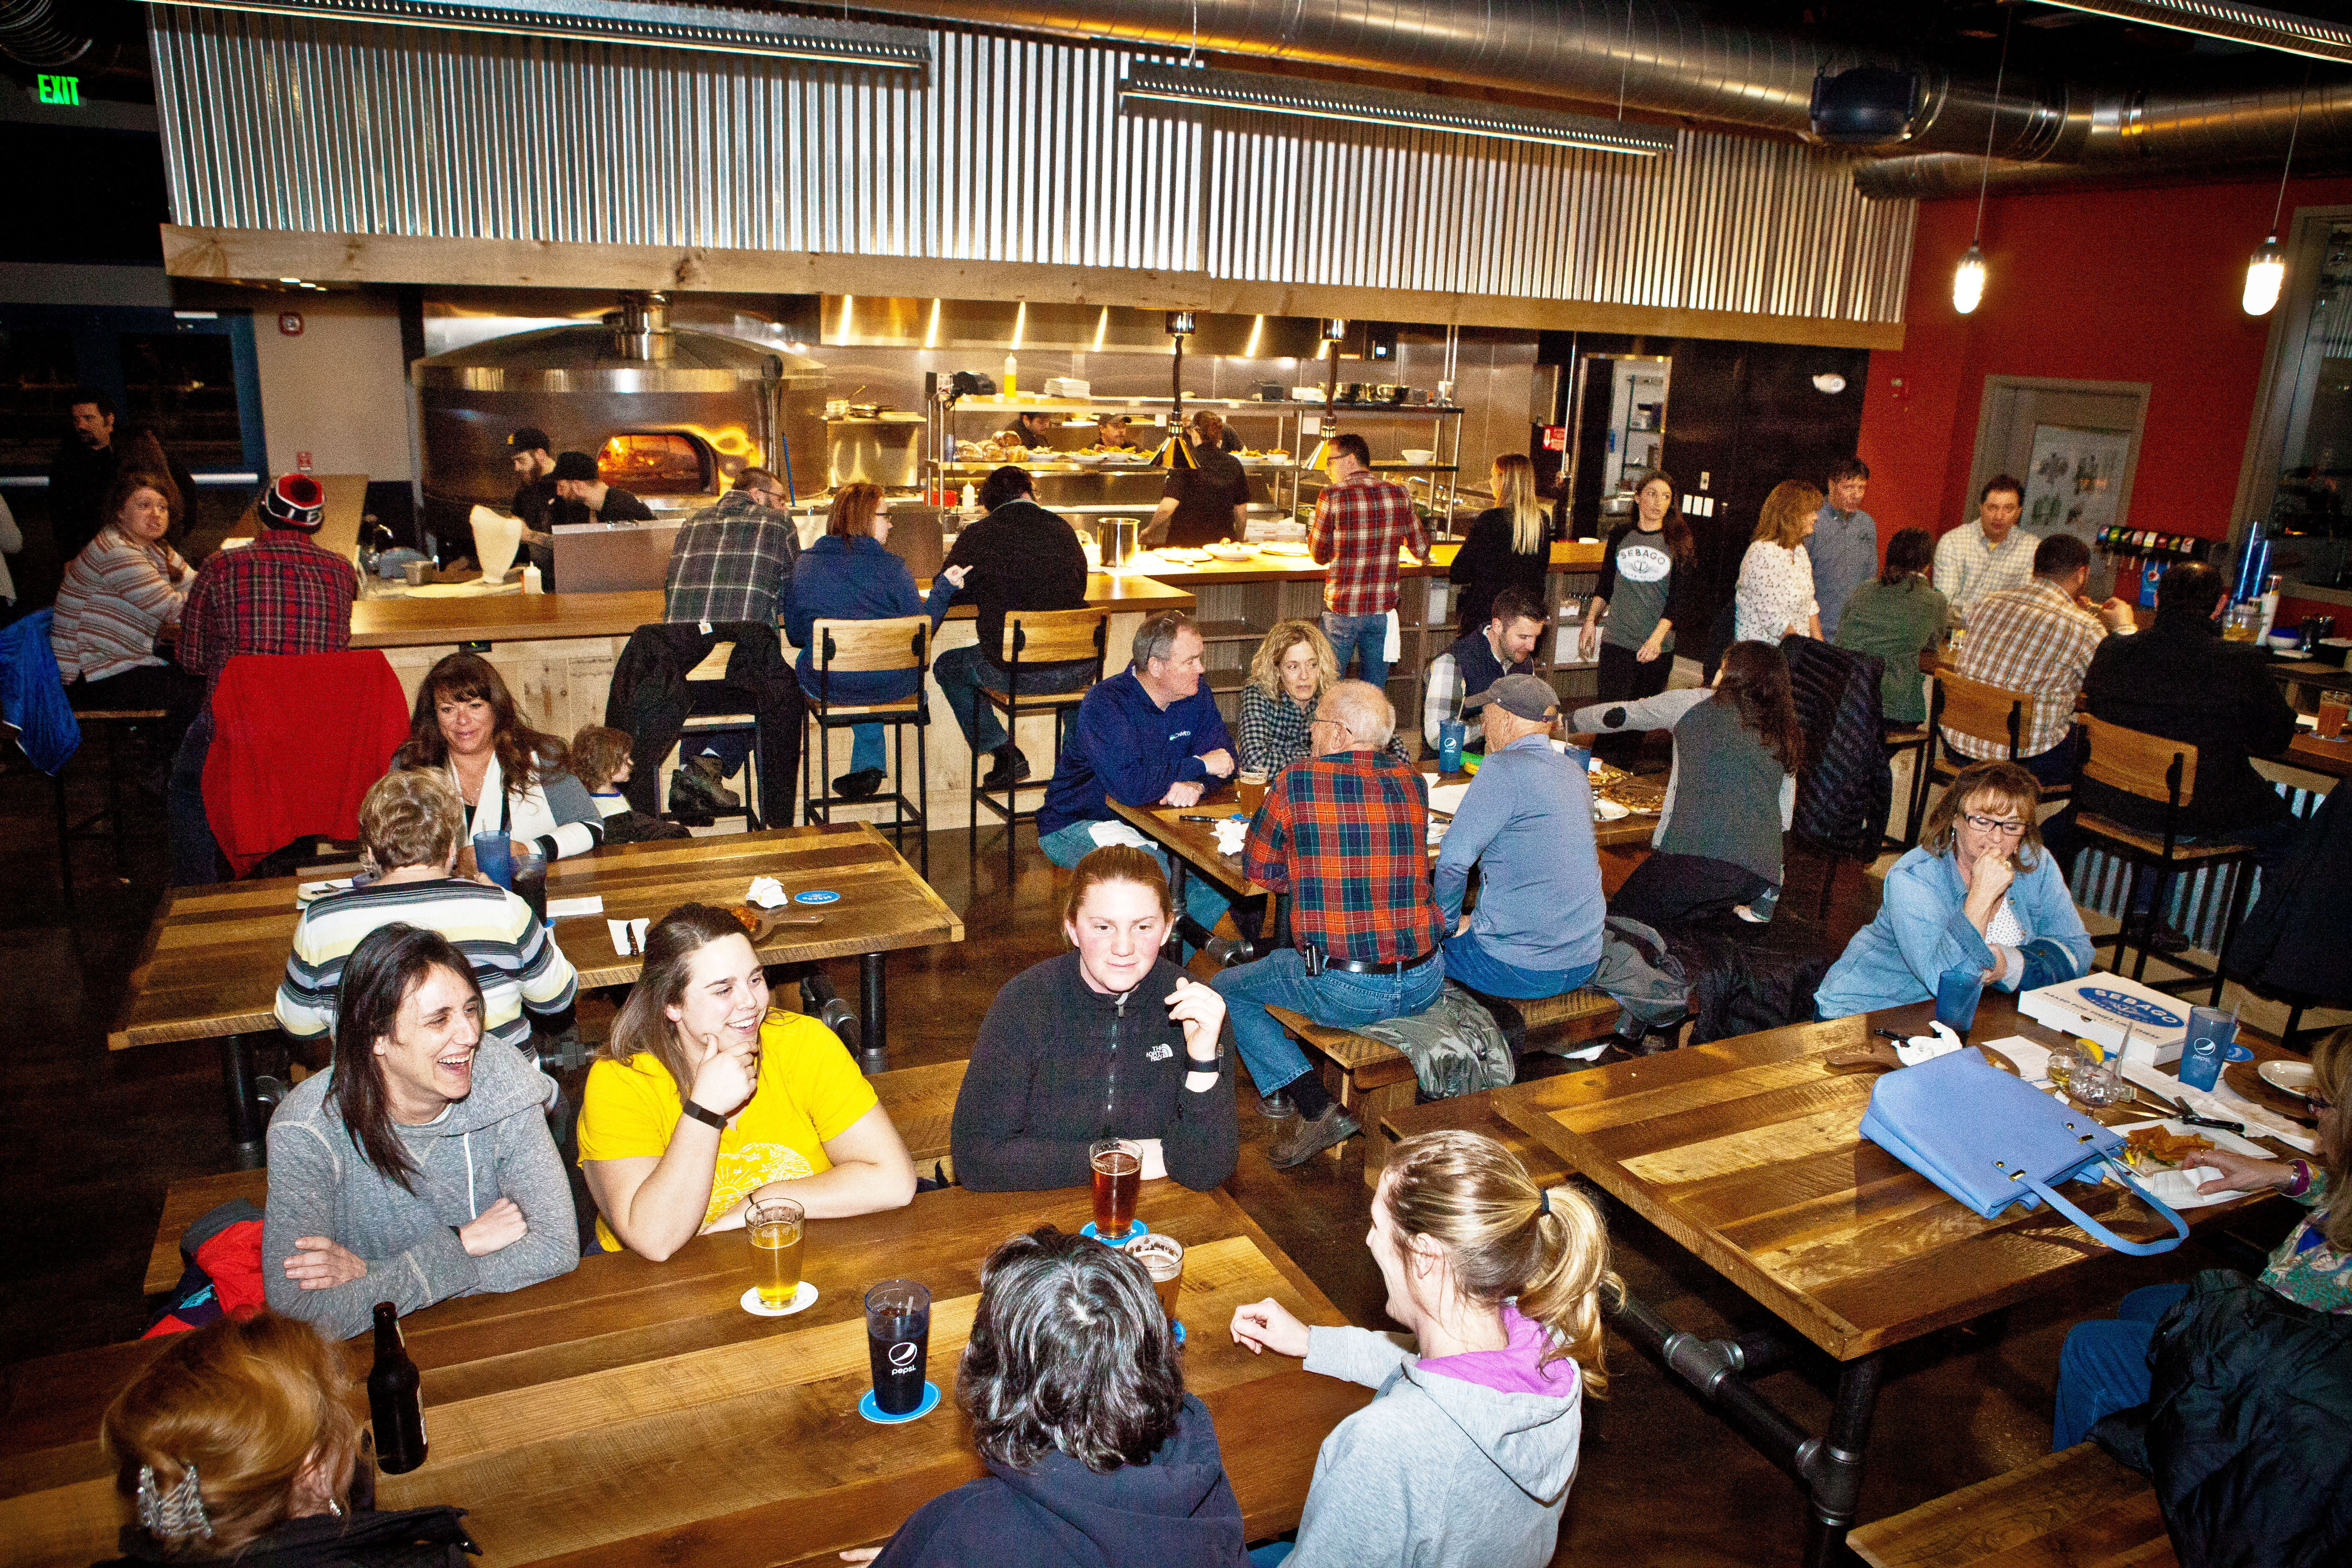 Destination Brewery open for business